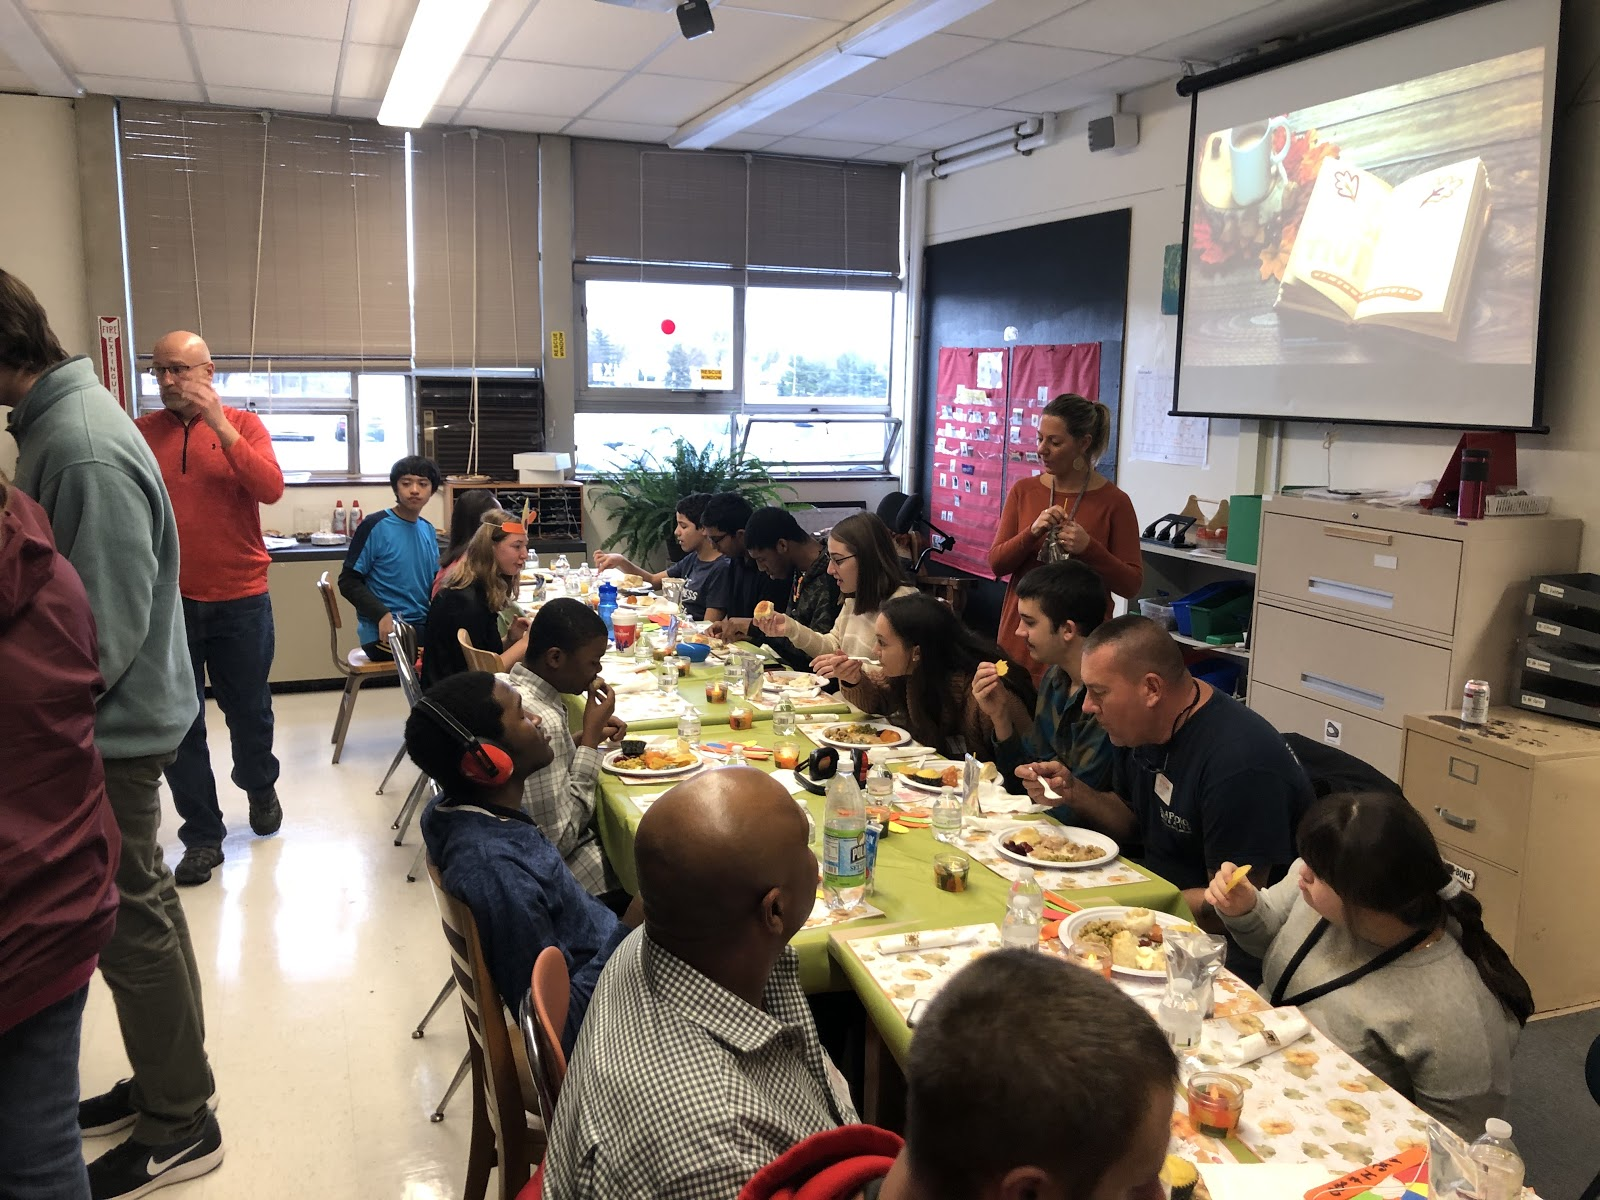 staff and students enjoy Thanksgiving dinner together at large table